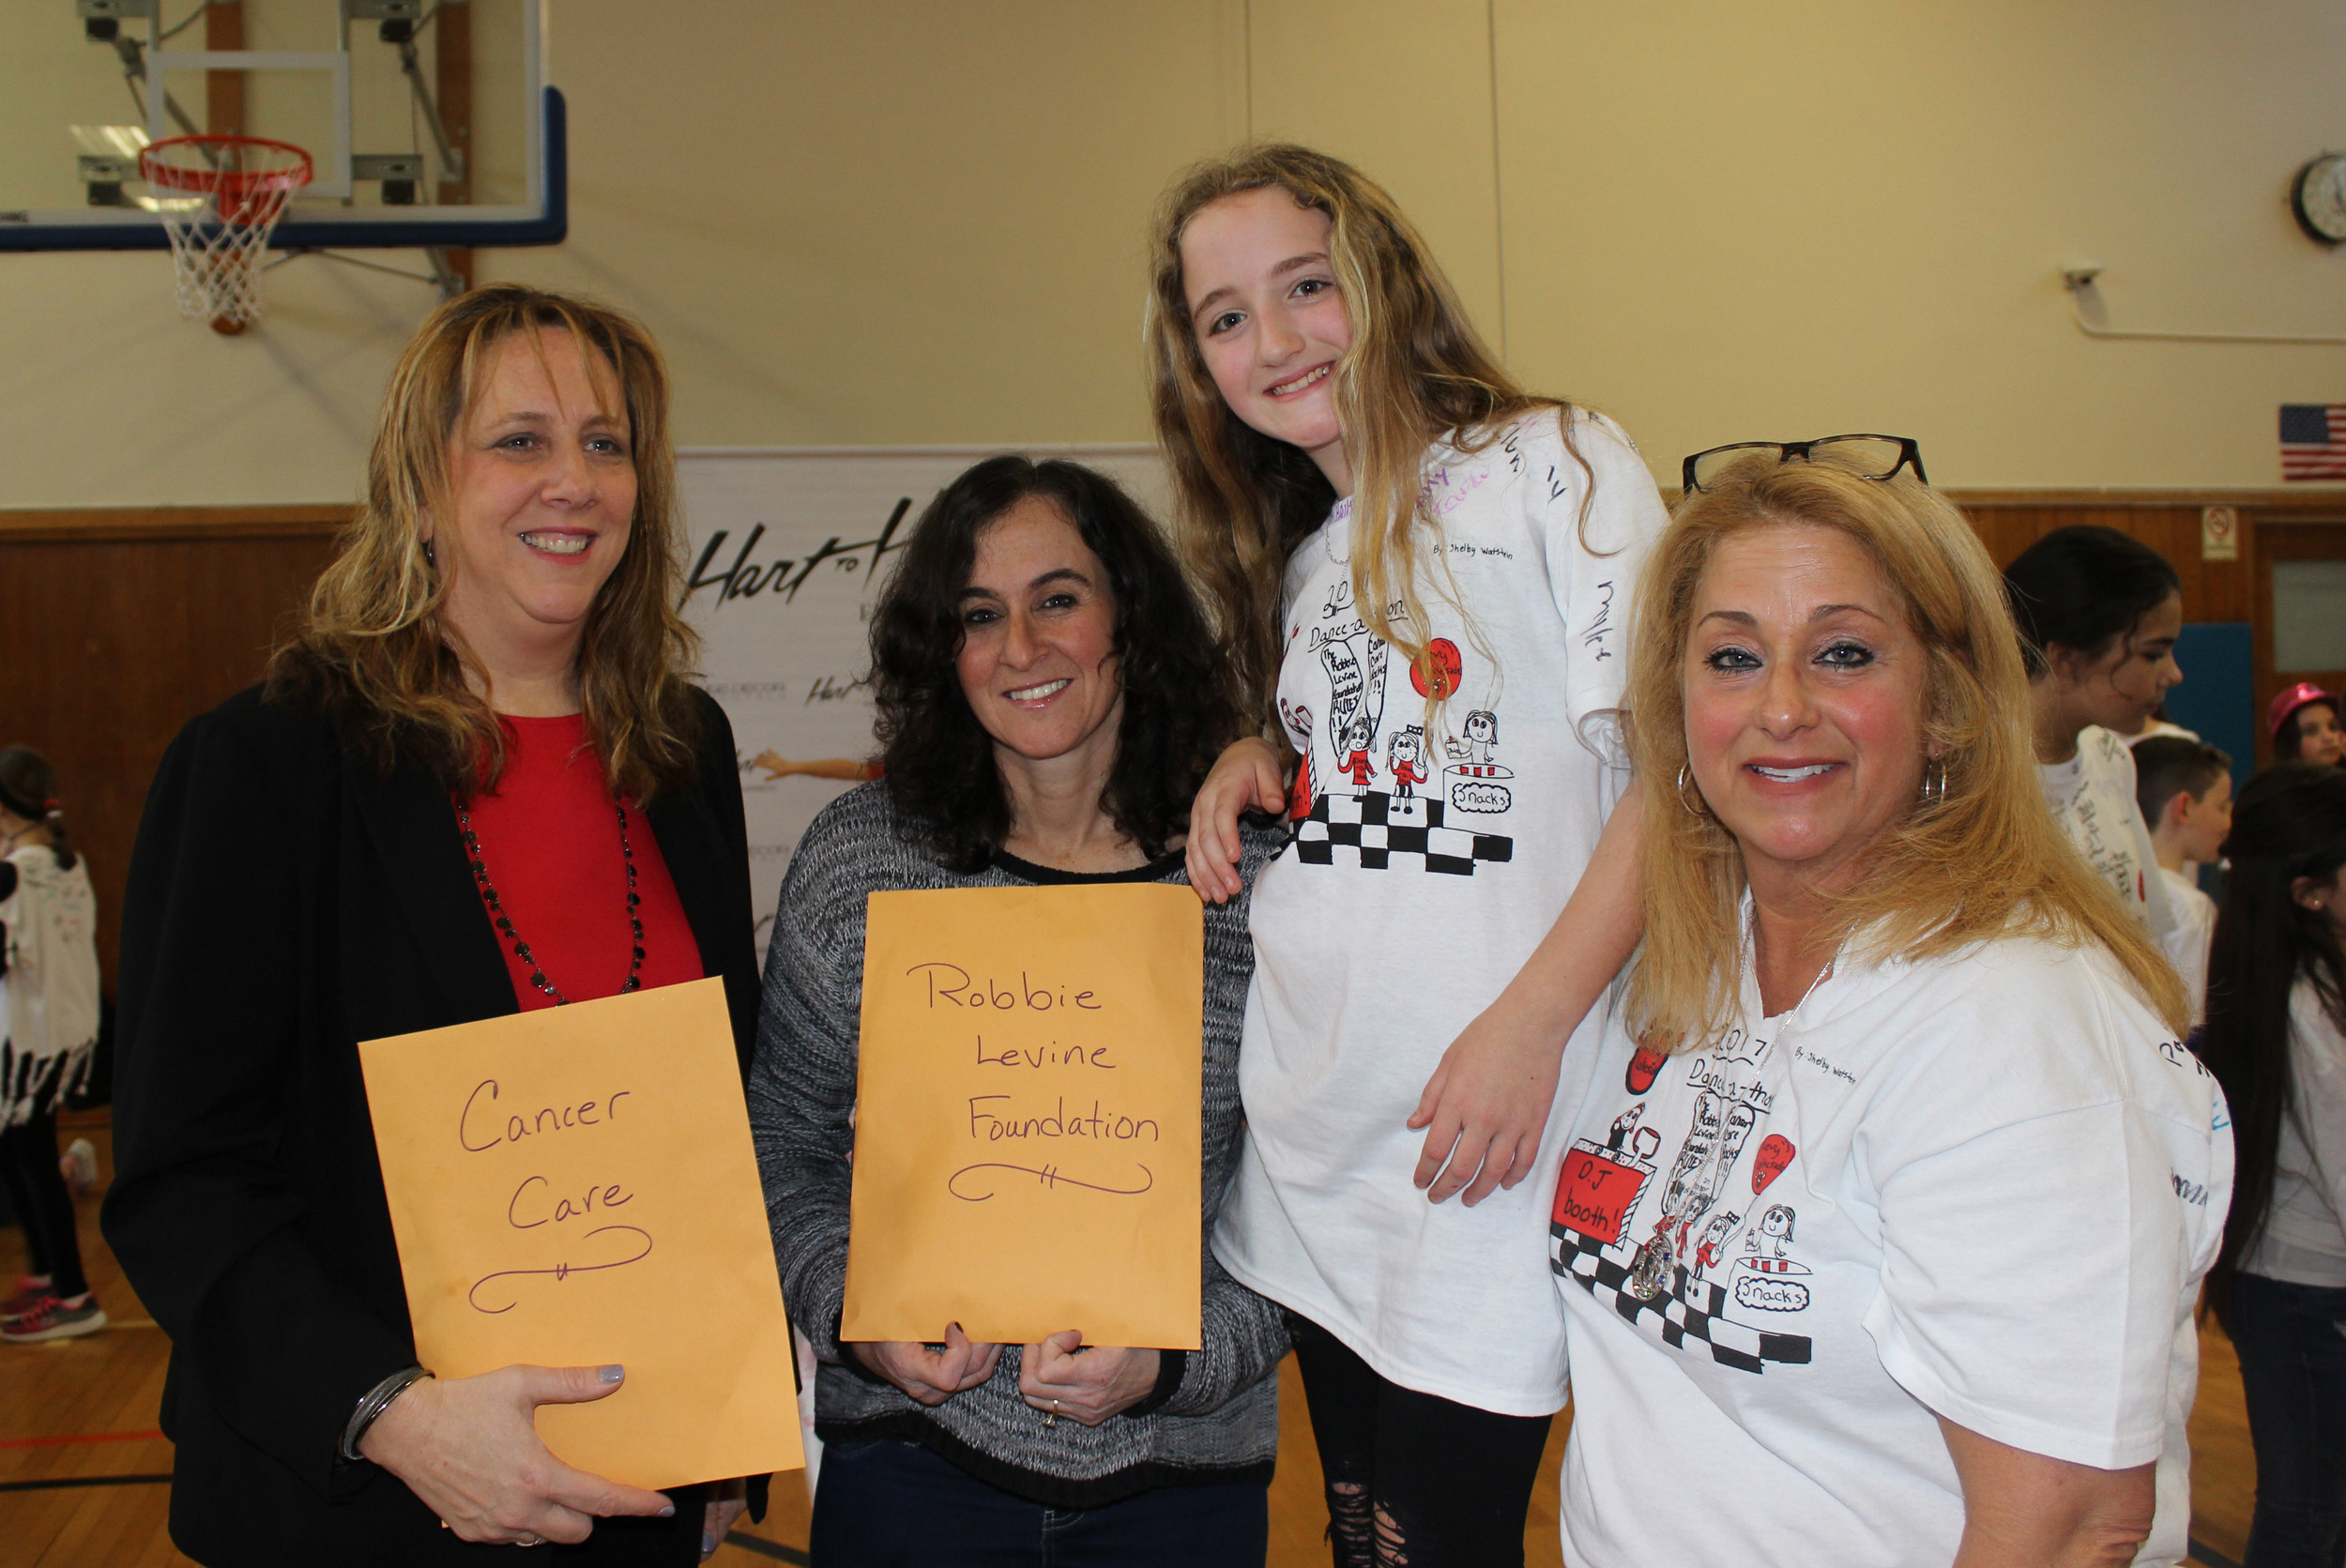 Amanda Ball, vice president of Levy-Lakeside's student countil, center right, and Soo Becchina, the student council advisor, far right, presented Tina Revelant, president of the Port Washington chapter of Cancer Care, left, and Jill Levine, founder of the Robbie Levine Foundation, with donations from the school's student body.